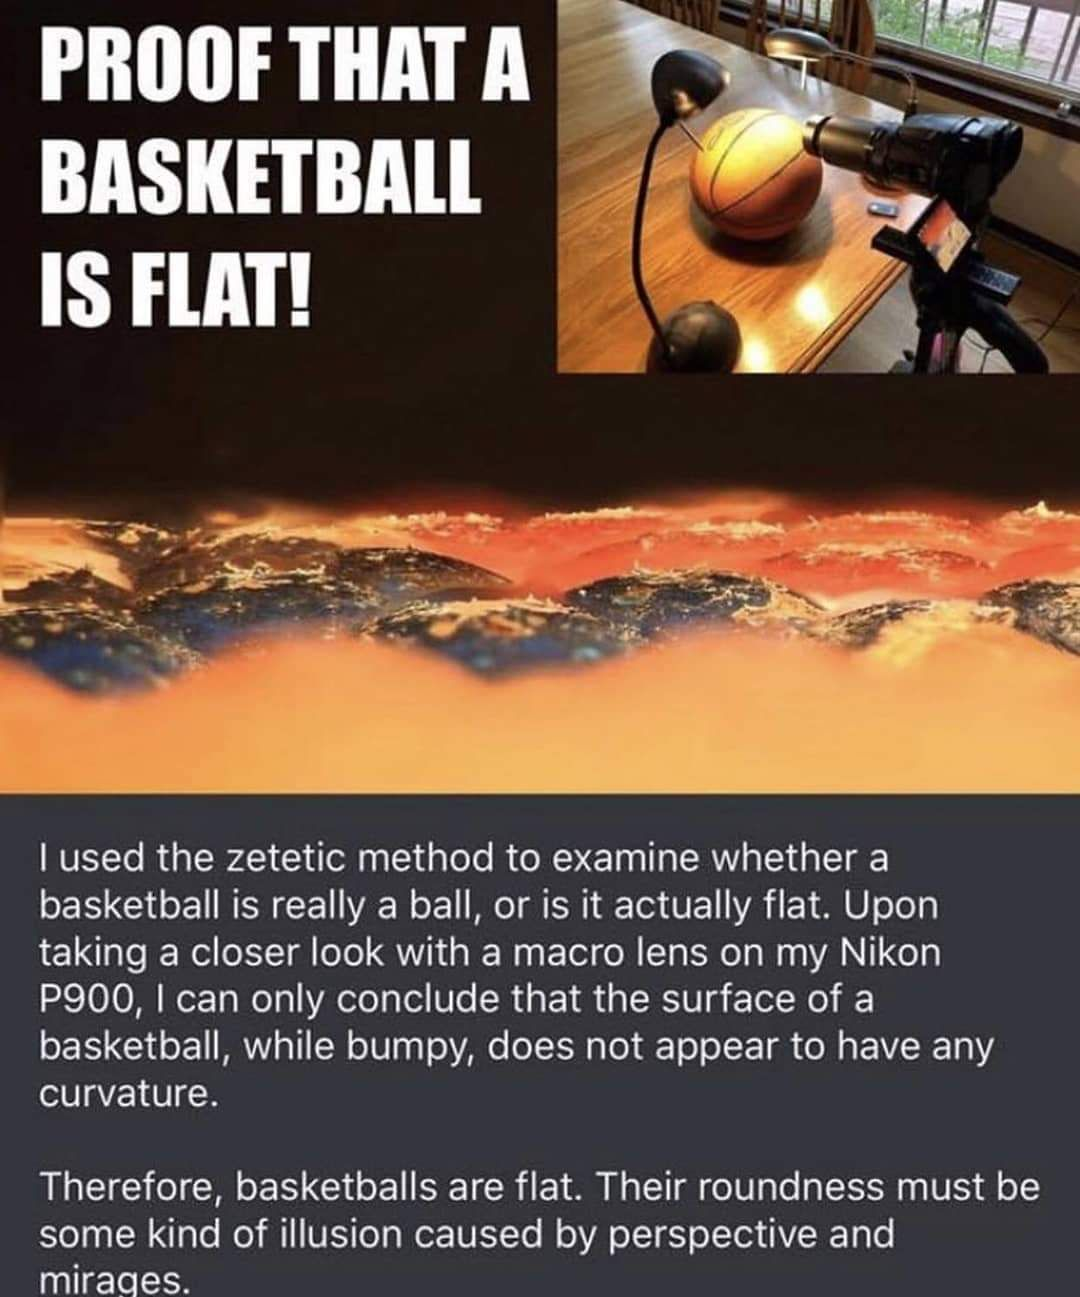 Proof that a basketball is flat!